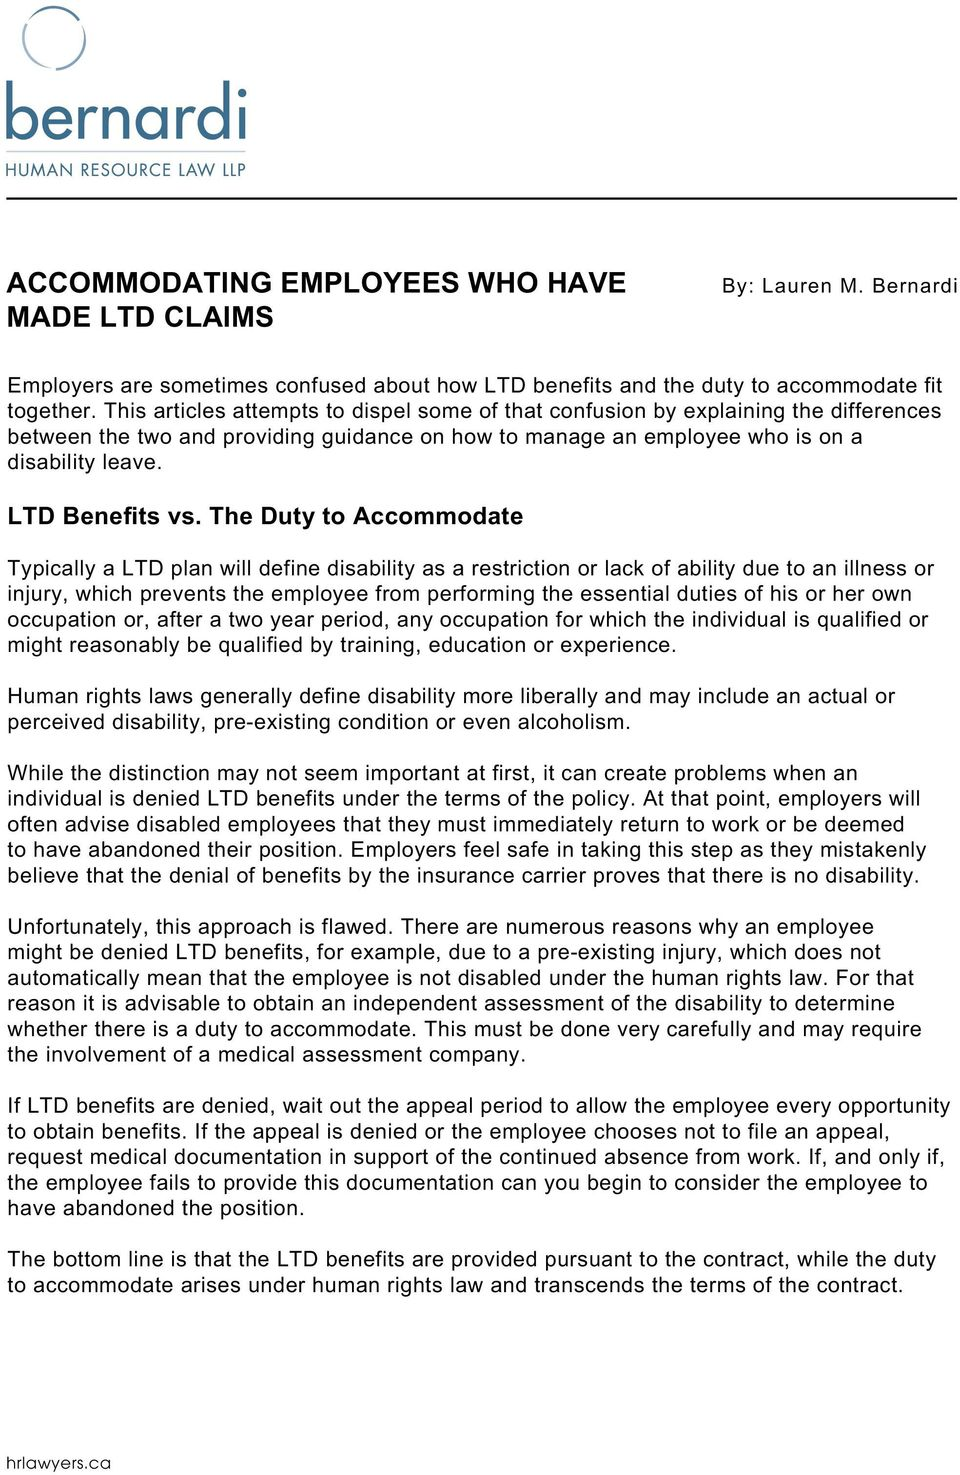 The Duty to Accommodate Typically a LTD plan will define disability as a restriction or lack of ability due to an illness or injury, which prevents the employee from performing the essential duties